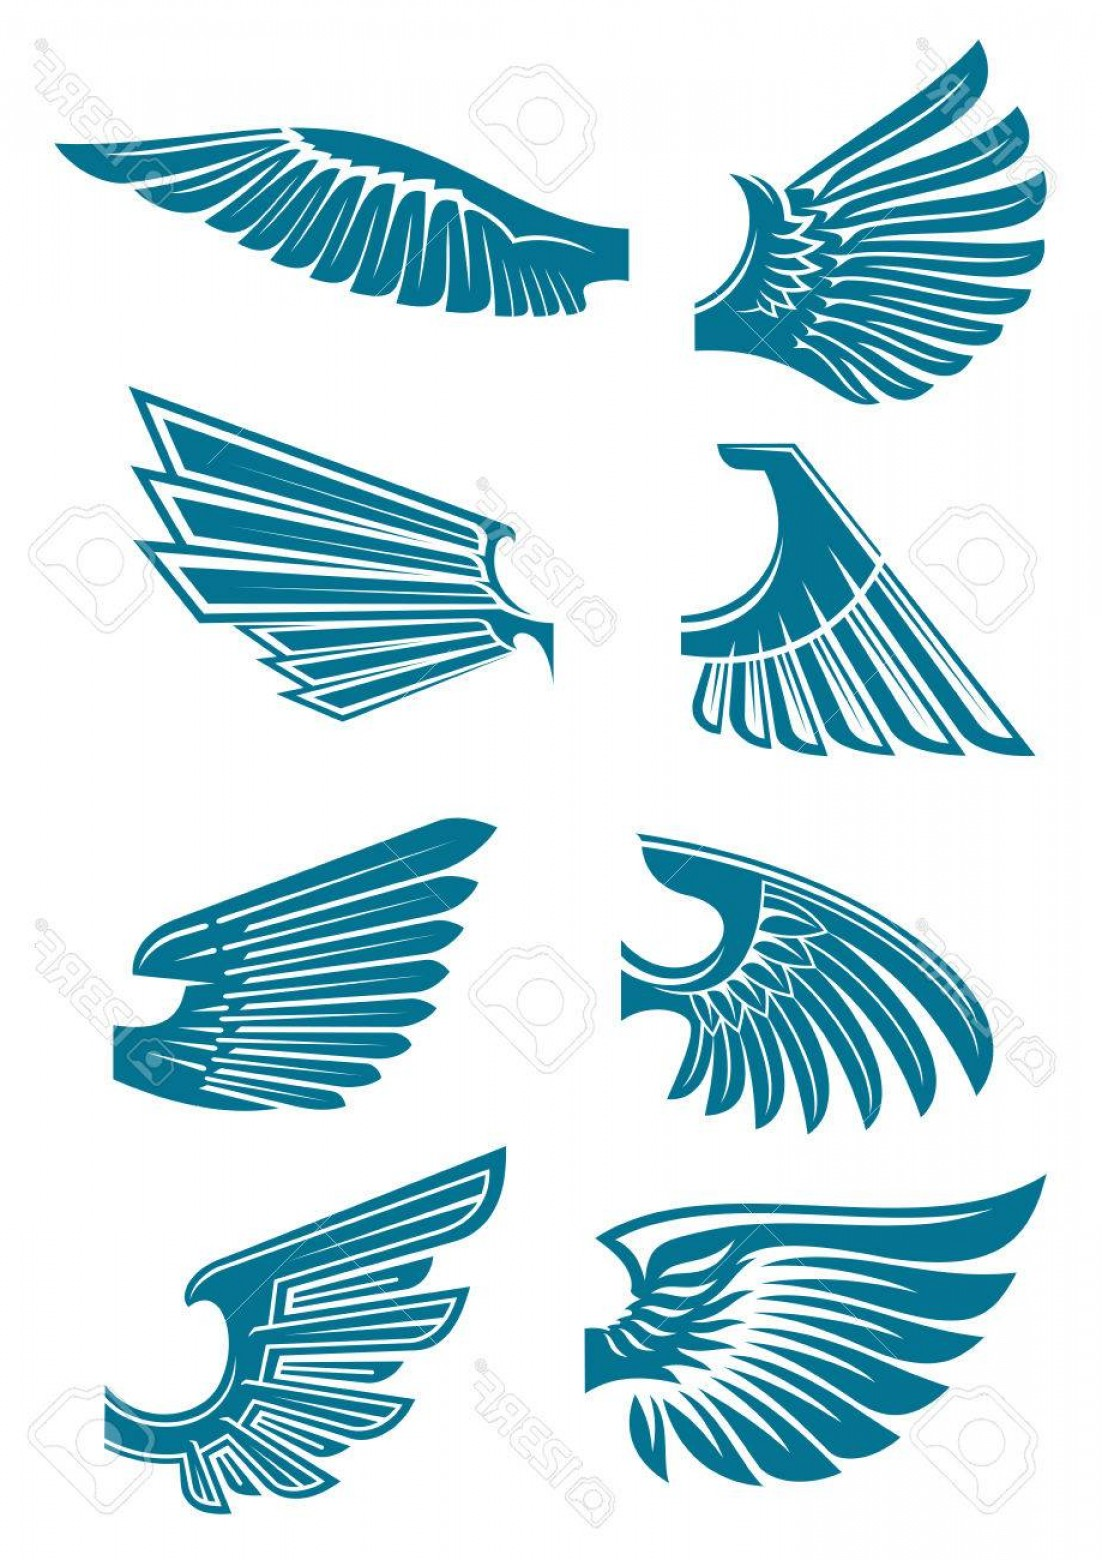 Falcon Wing Vector Art: Photostock Vector Open Bird Wings Icons For Heraldic Symbol Or Tattoo Design Usage With Medieval Stylized Blue Silhoue